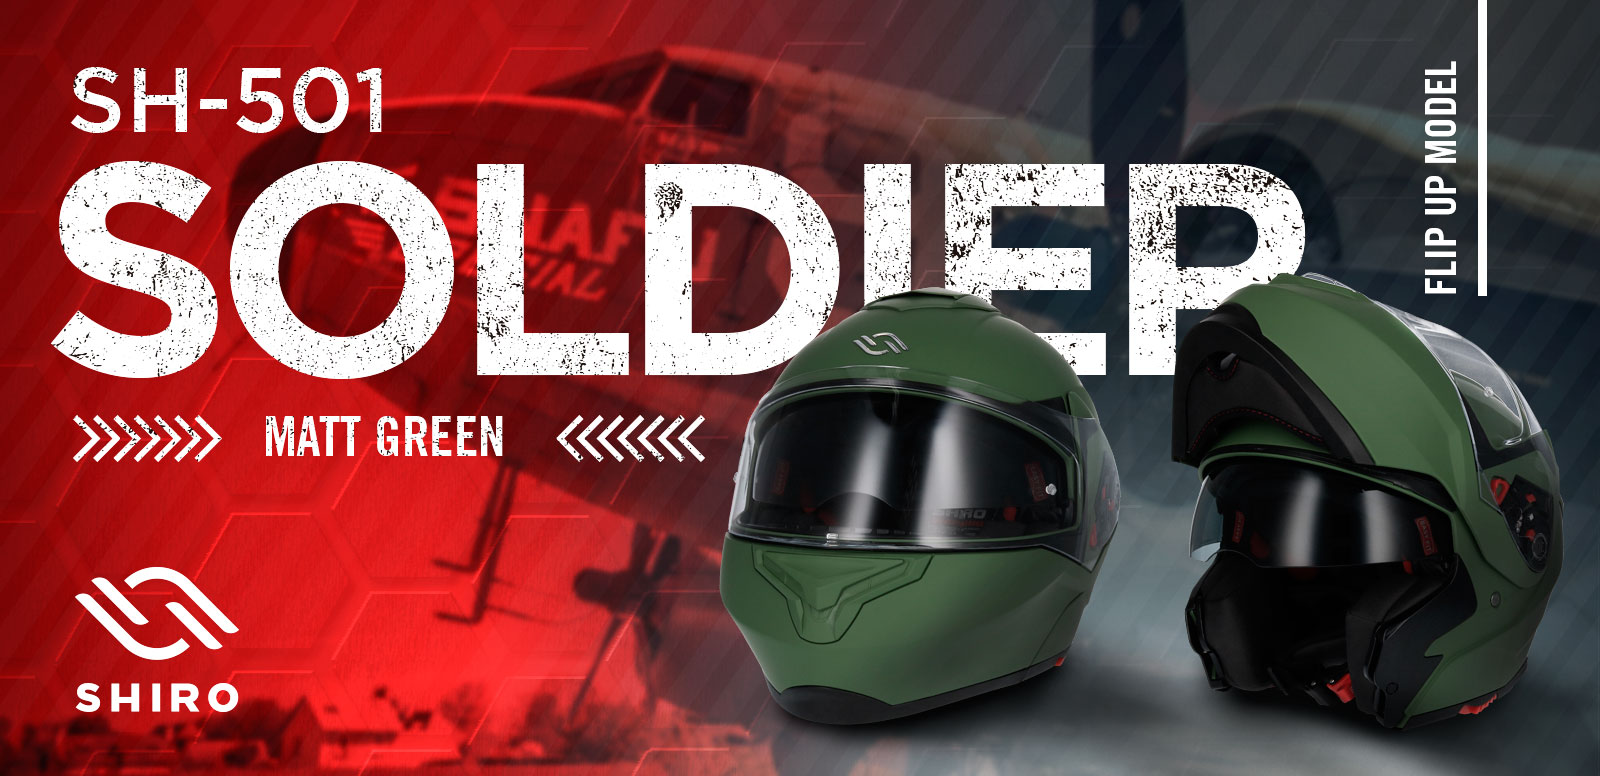 BANNER-CASCO-SHIRO-SH501-SOLDIER-MATT-GREEN